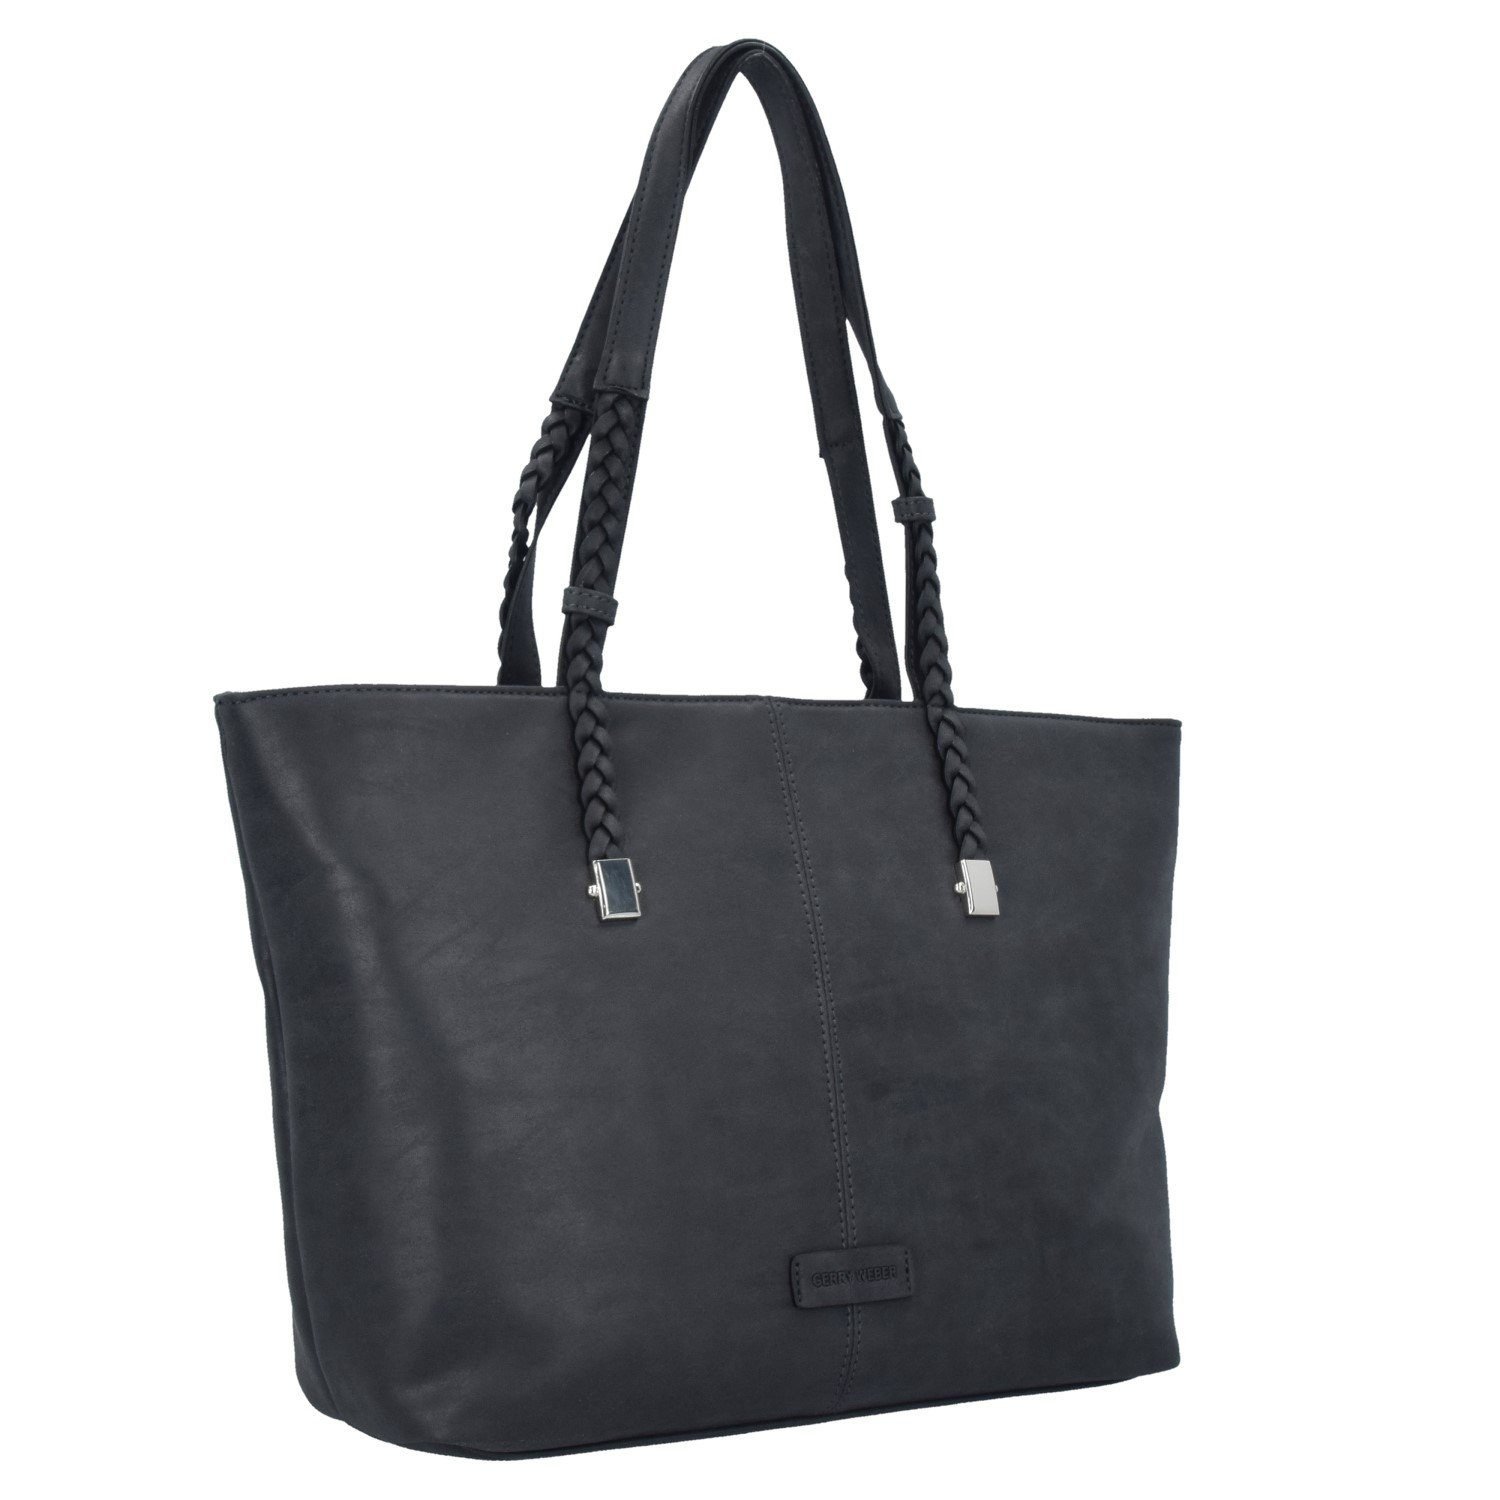 Gerry Weber Braided 2 Shopper Tasche 44 cm